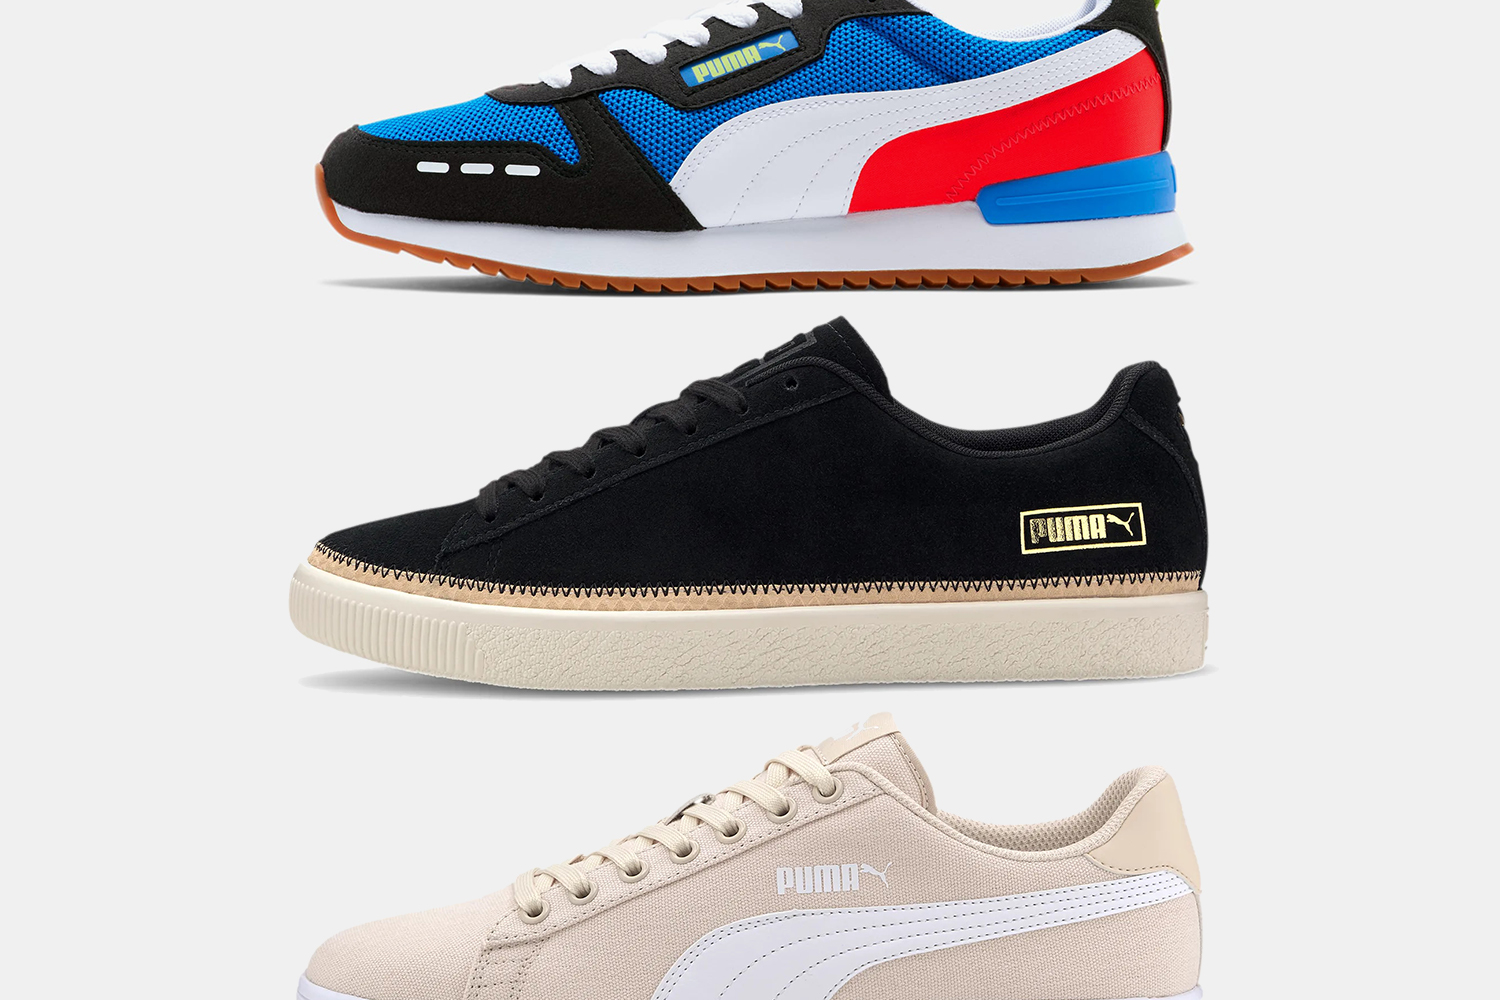 Puma Sneakers Are Up to 70% Off During the Private Sale ...